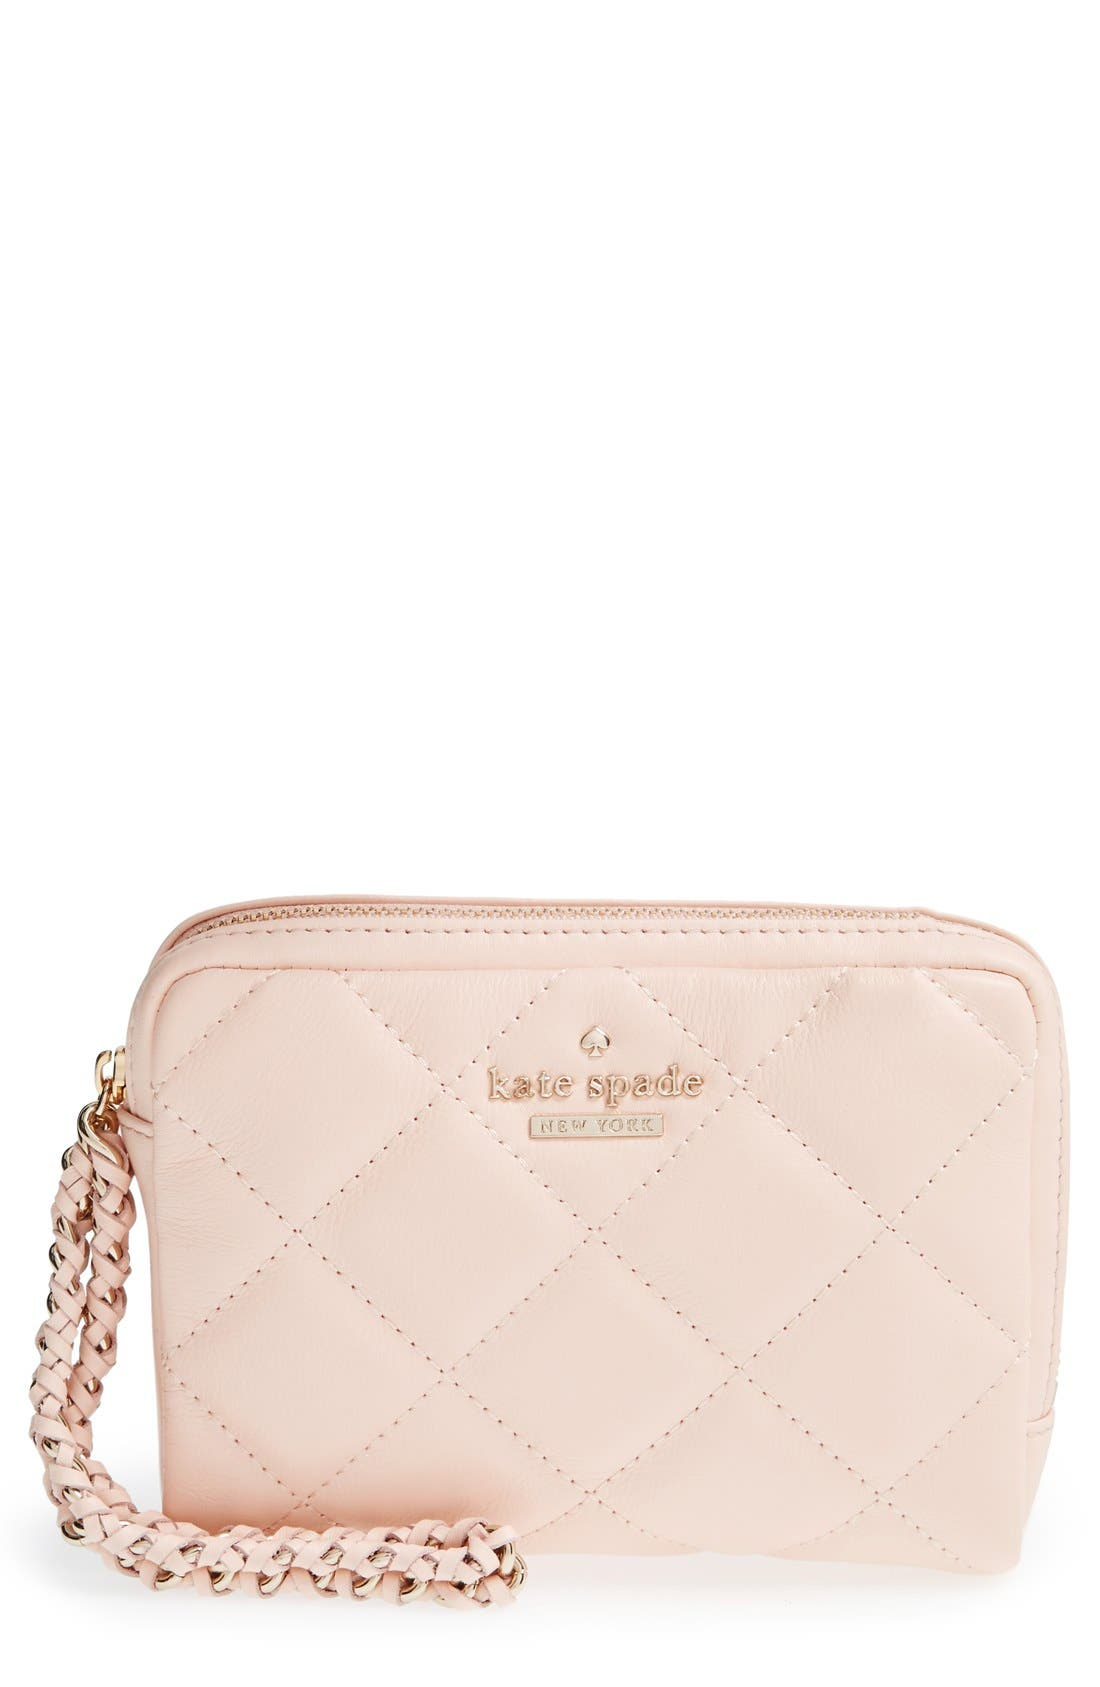 Alternate Image 1 Selected - kate spade new york 'emerson place - essa' quilted leather wristlet